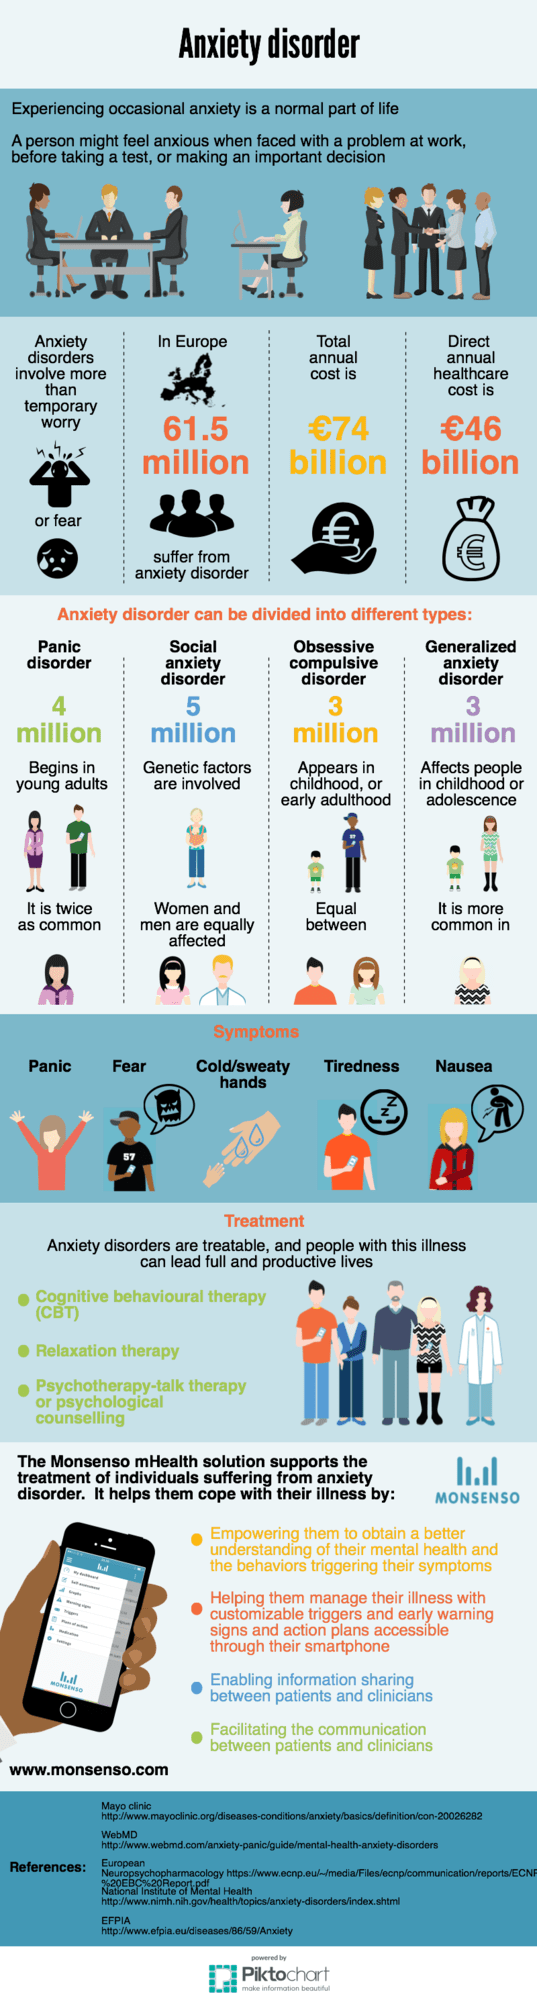 an infographic of facts about anxiety disorder